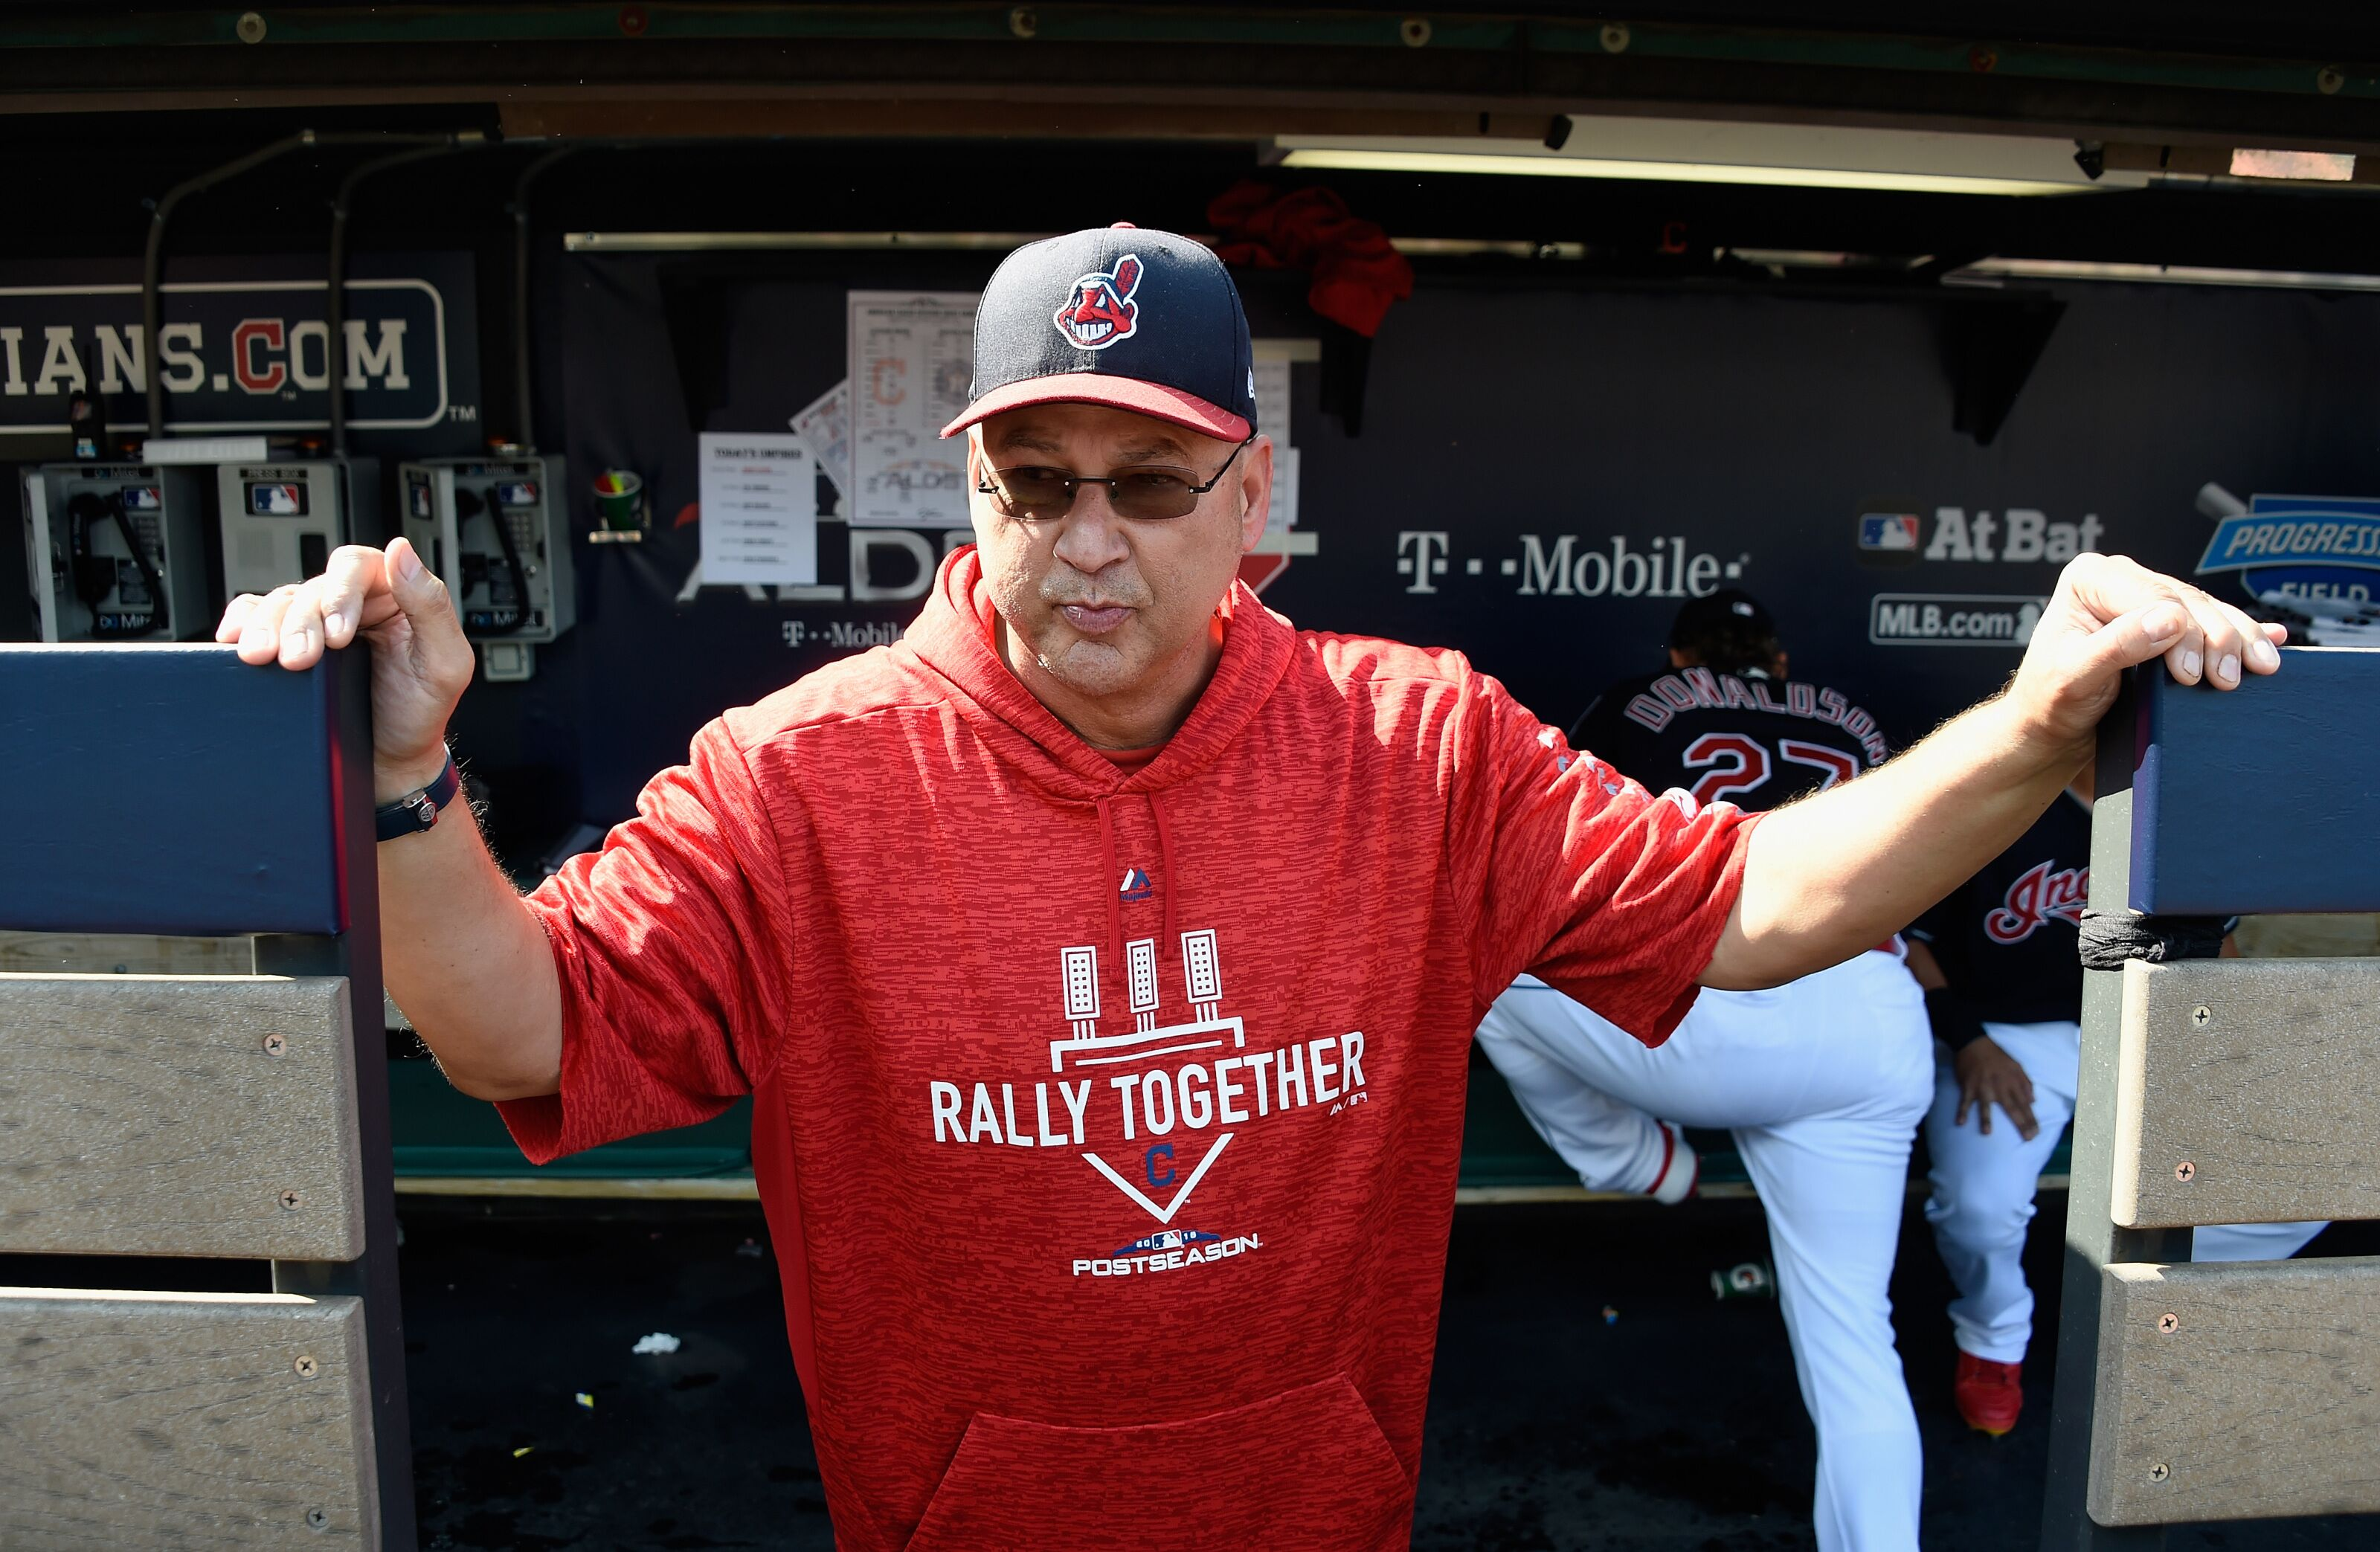 Cleveland Indians: Terry Francona comments on Tribe rumors